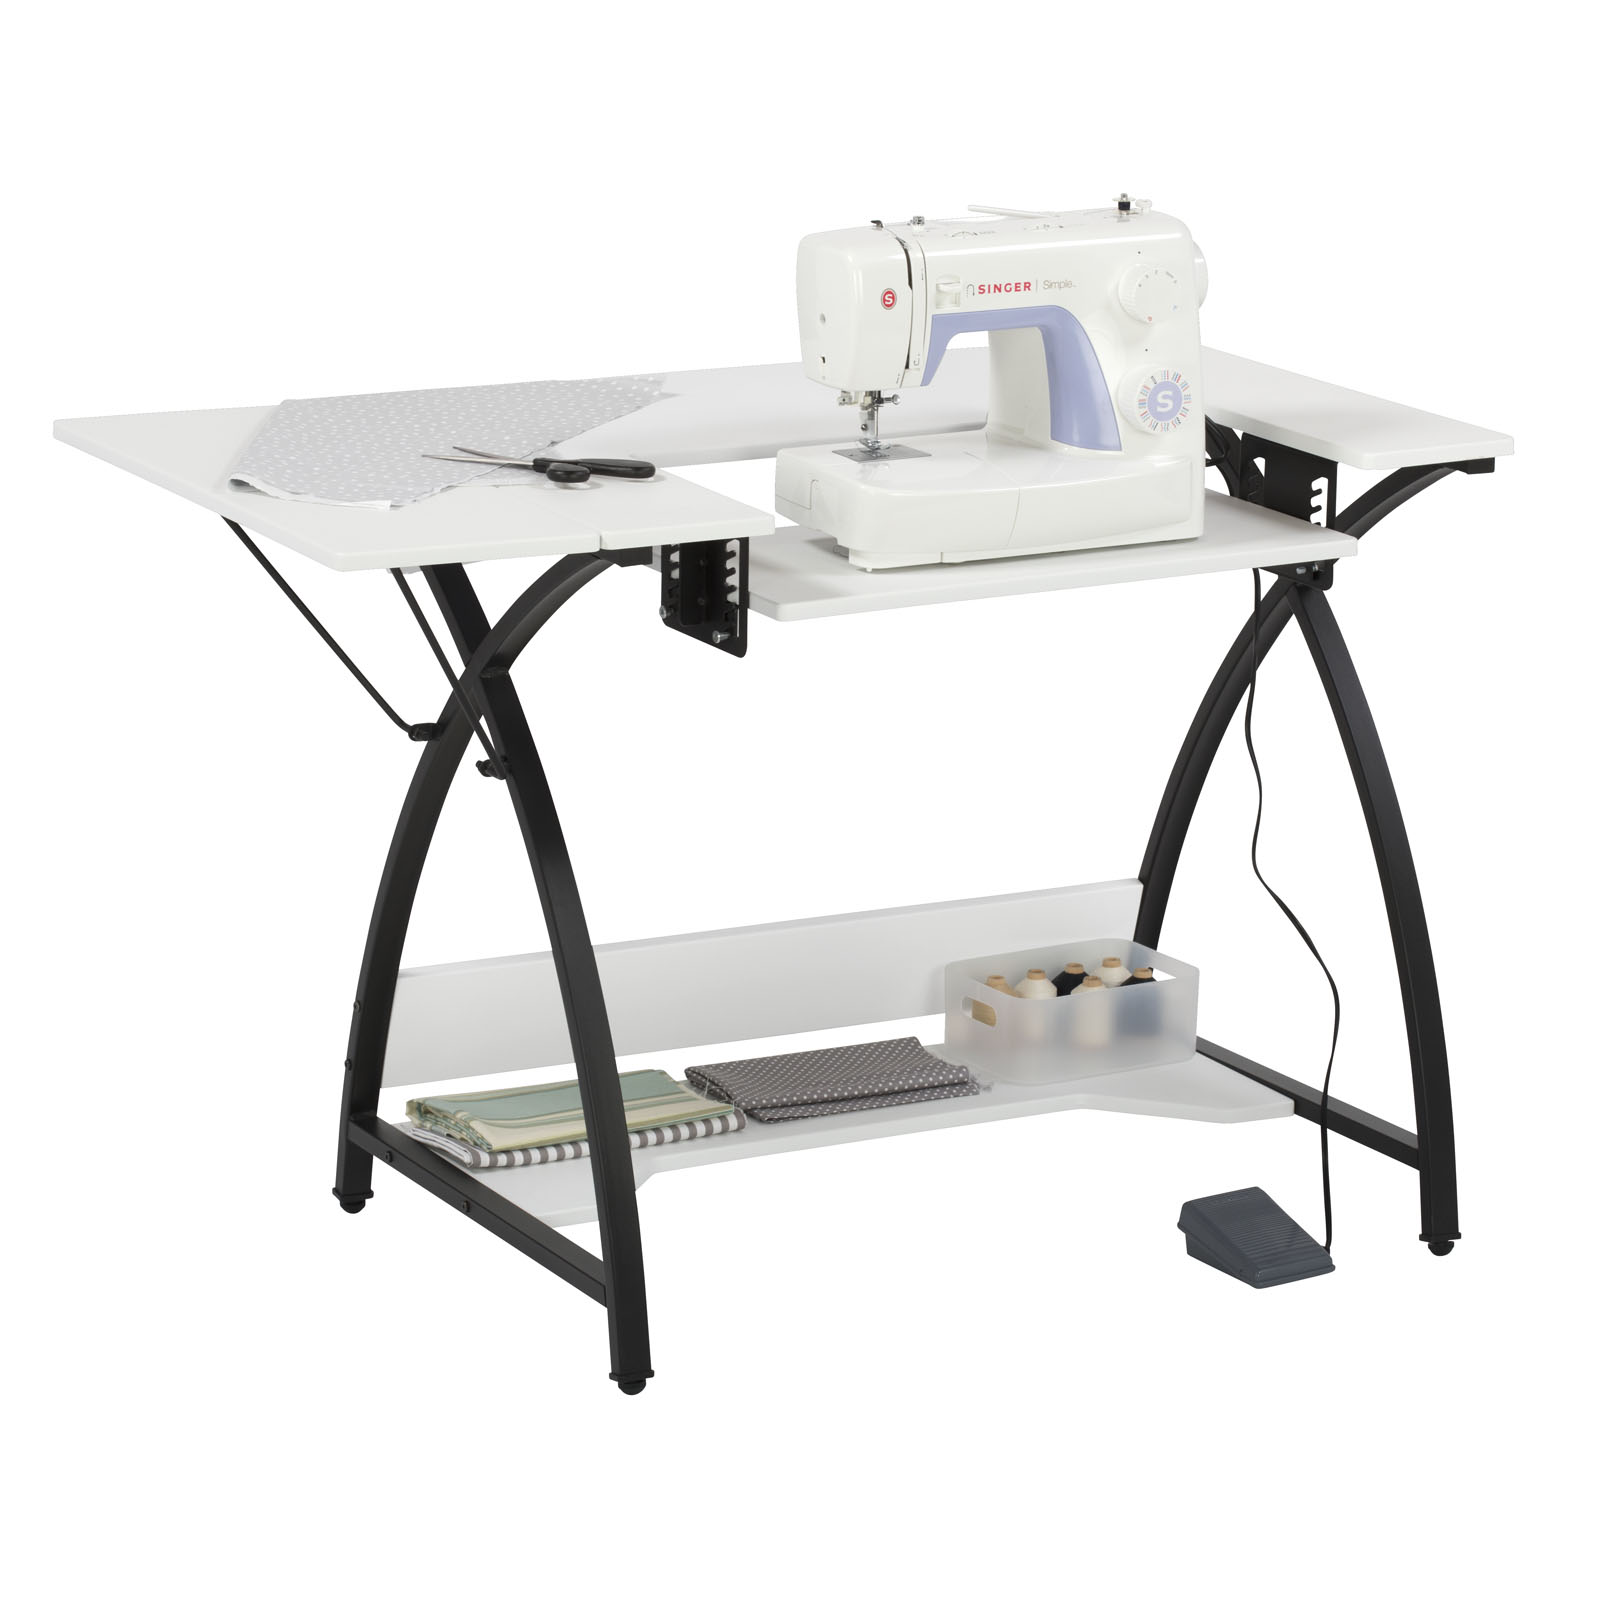 Comet Hobby Sewing Machine Table In Black White Item